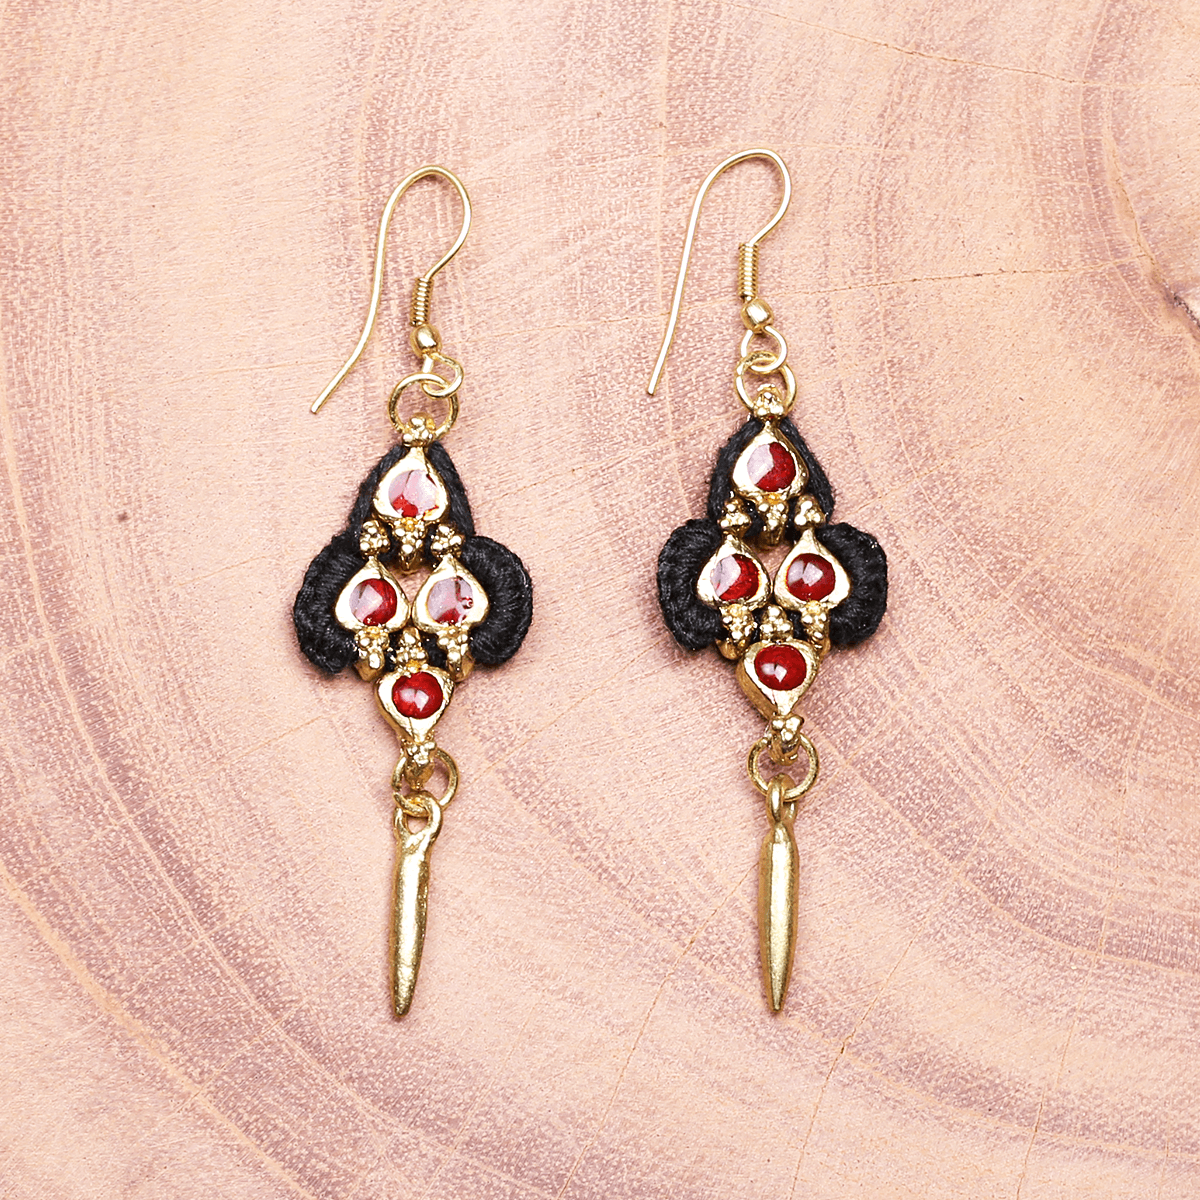 Bohemian Fashion Metal Earrings - Black